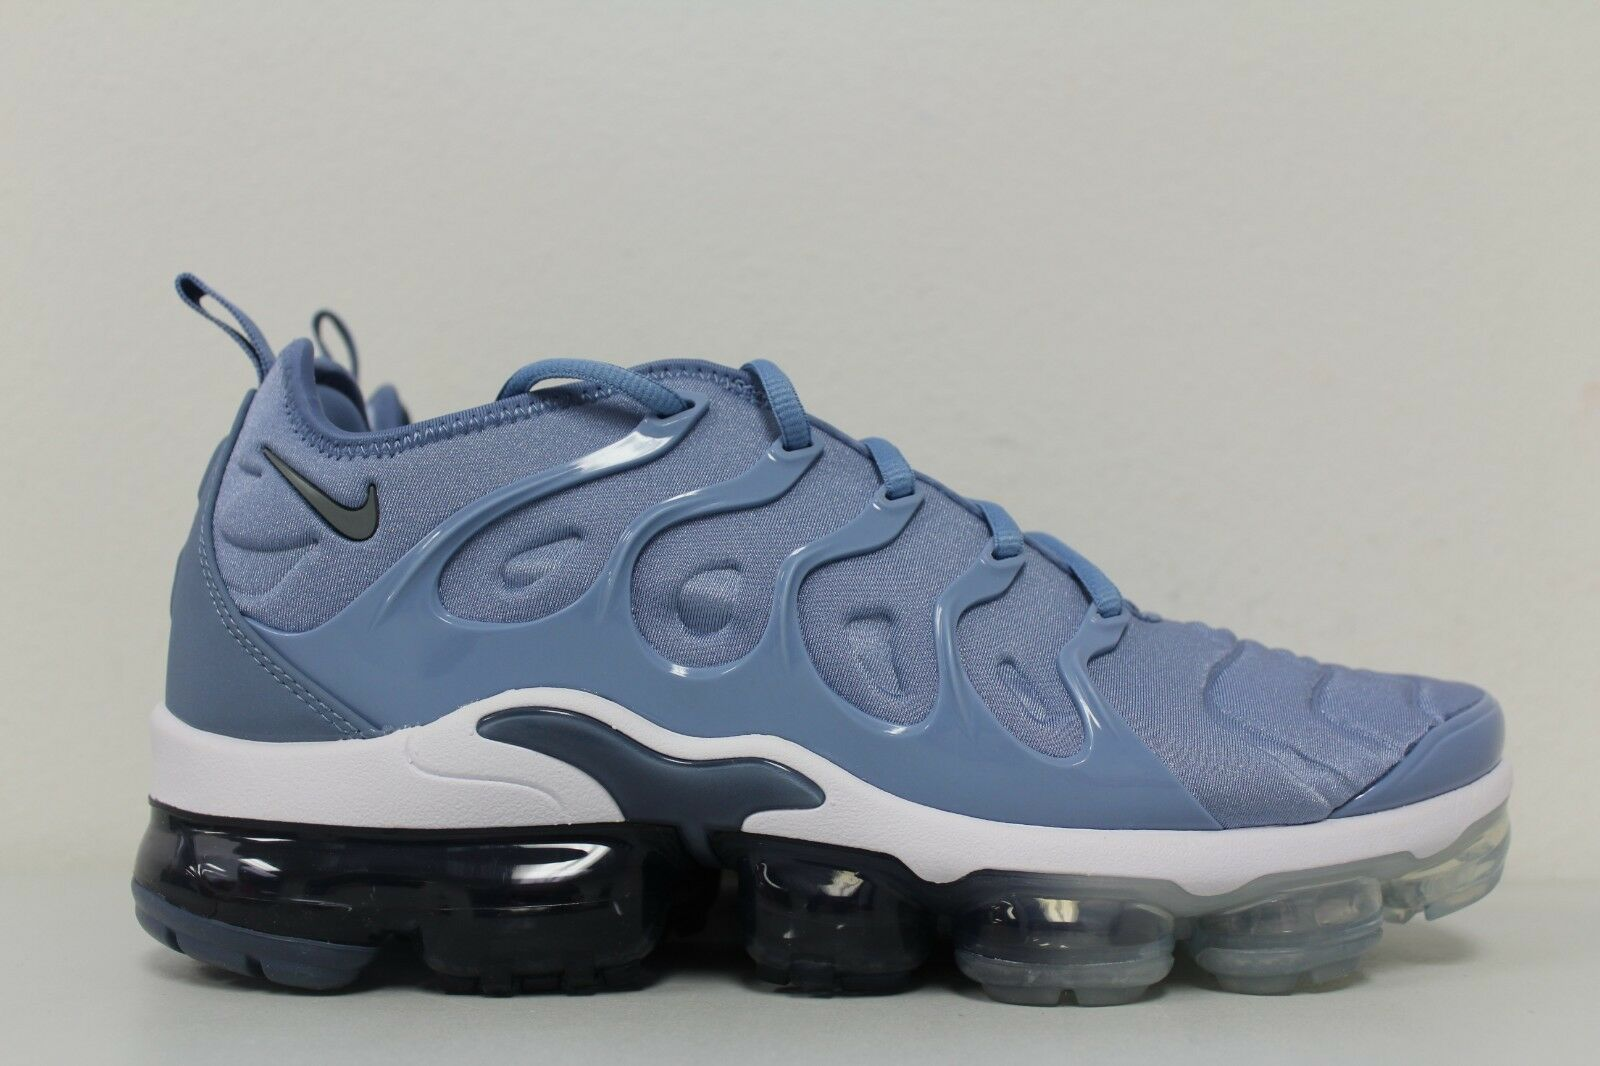 01a0be560a3 Nike Air Vapormax Plus Work Blue Cool Grey 924453 402 Mens Size 10 ...